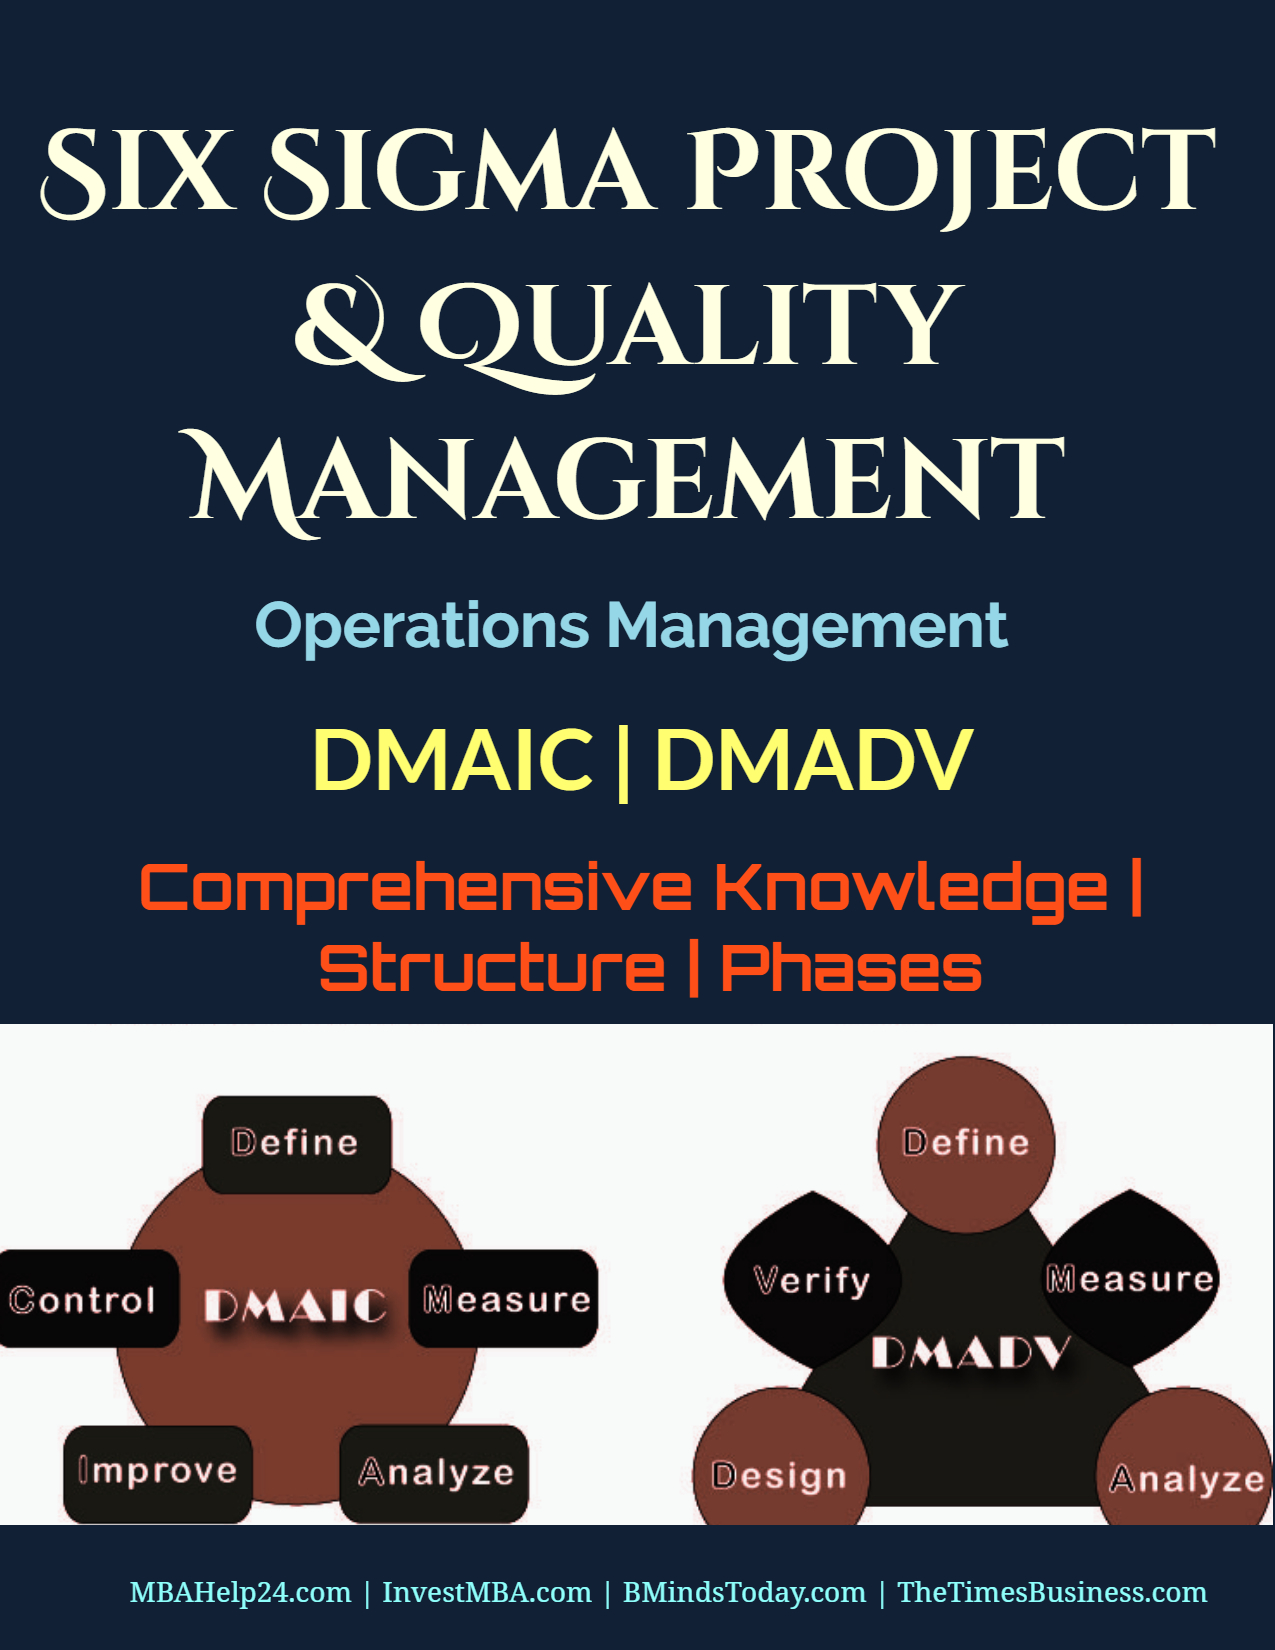 Six Sigma Project and Quality Management | DMAIC | DMADV | Structure | Phases six sigma Six Sigma Project and Quality Management | DMAIC | DMADV | DFSS | Phases Six Sigma Project and Quality Management DMAIC DMADV Structure Phases